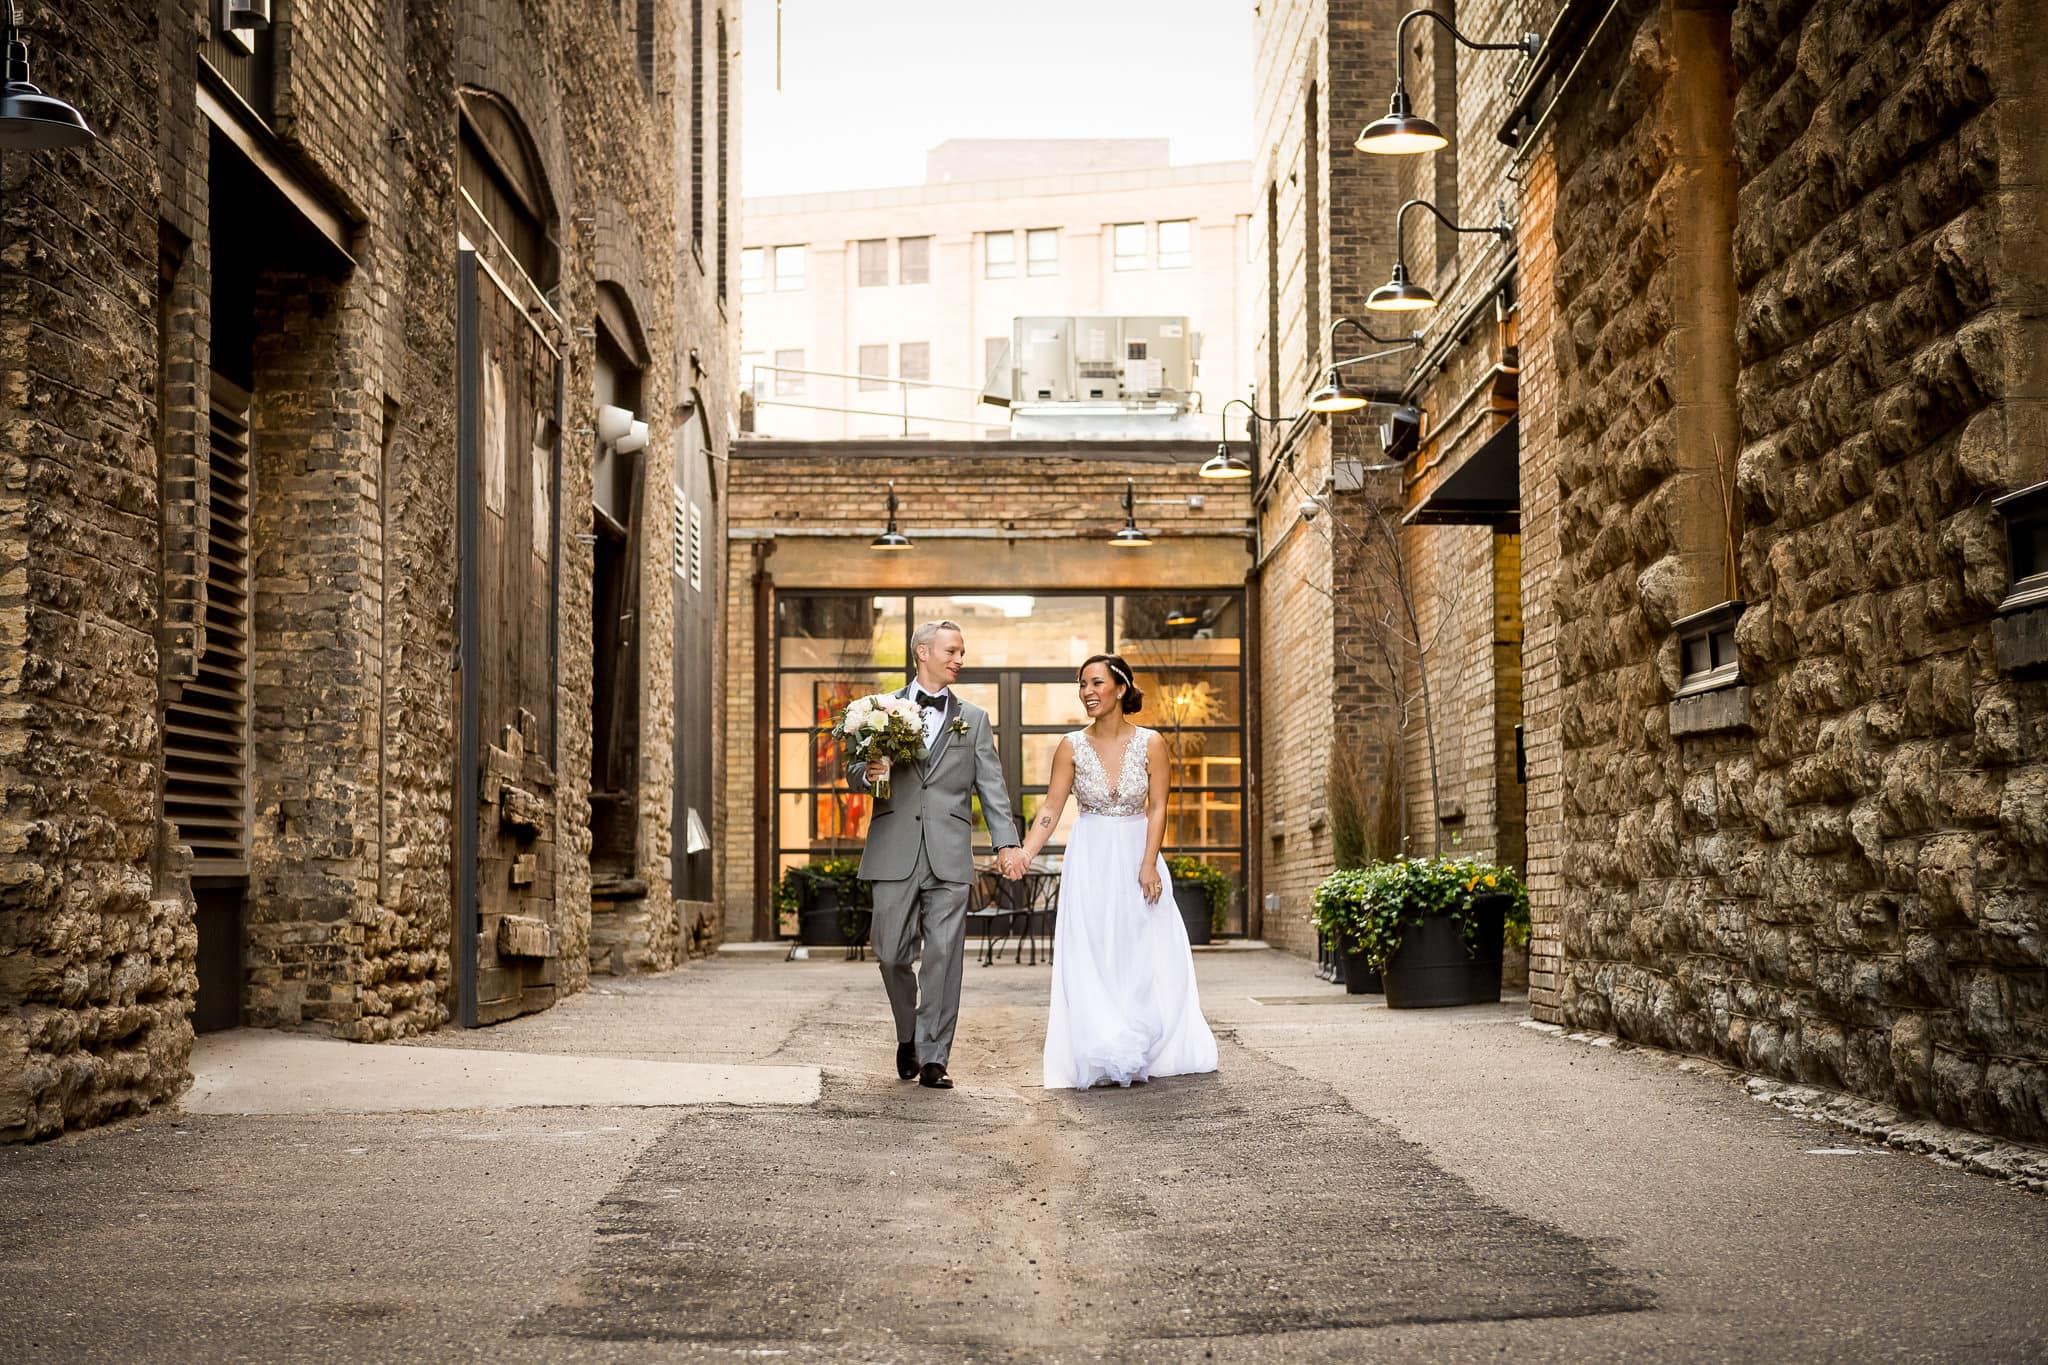 Bride and Groom Walking together at the Hewing Hotel